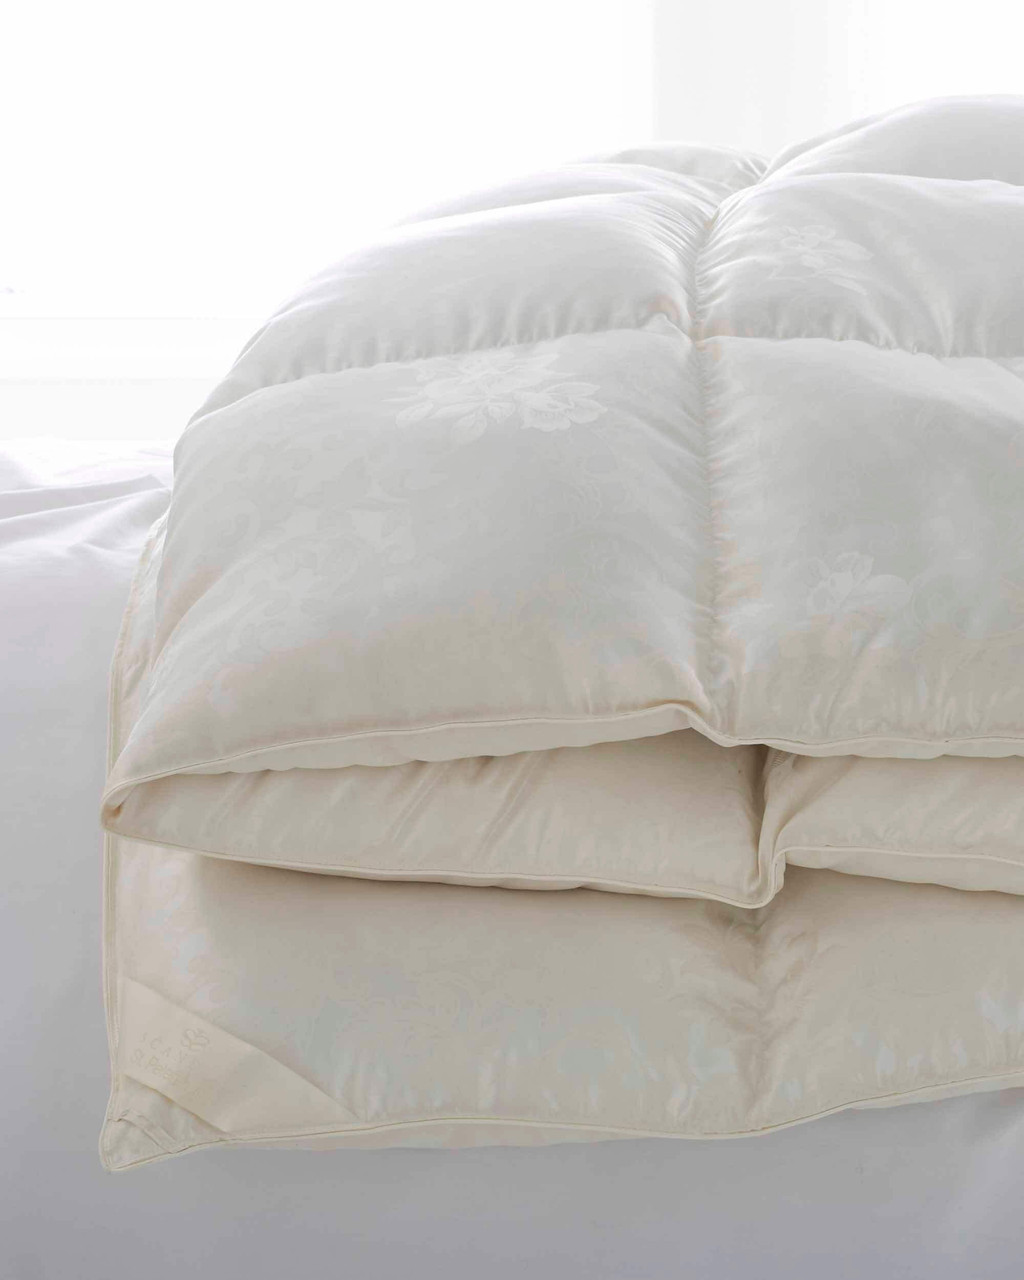 scandia down st. petersburg down comforter, scandia home st. petersburg down comforter, scandia down duvet, scandia home duvet